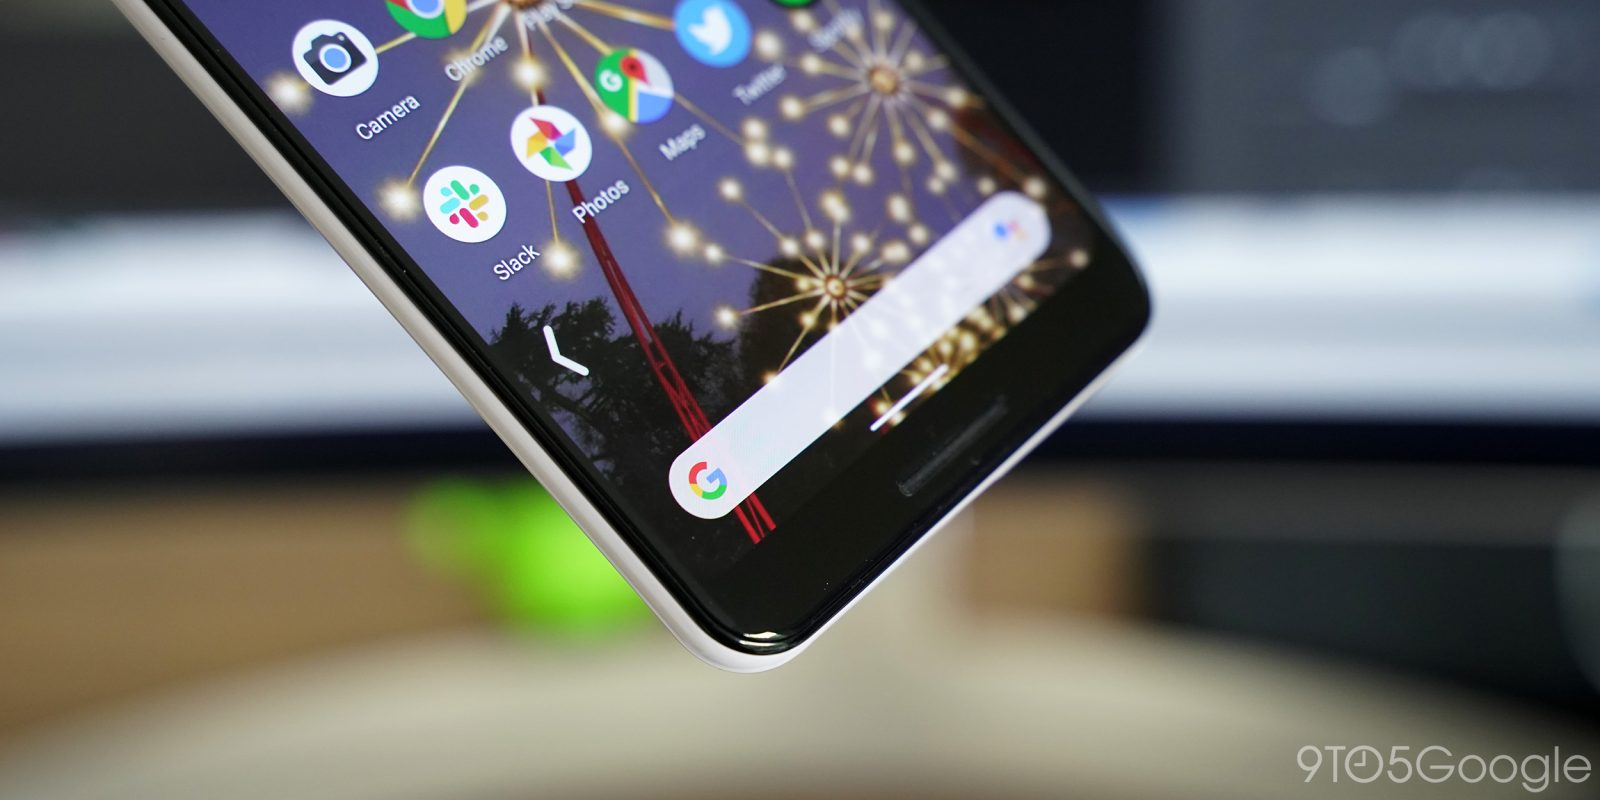 Gestures are blocked on launchers in Android Q Beta 5 - 9to5Google